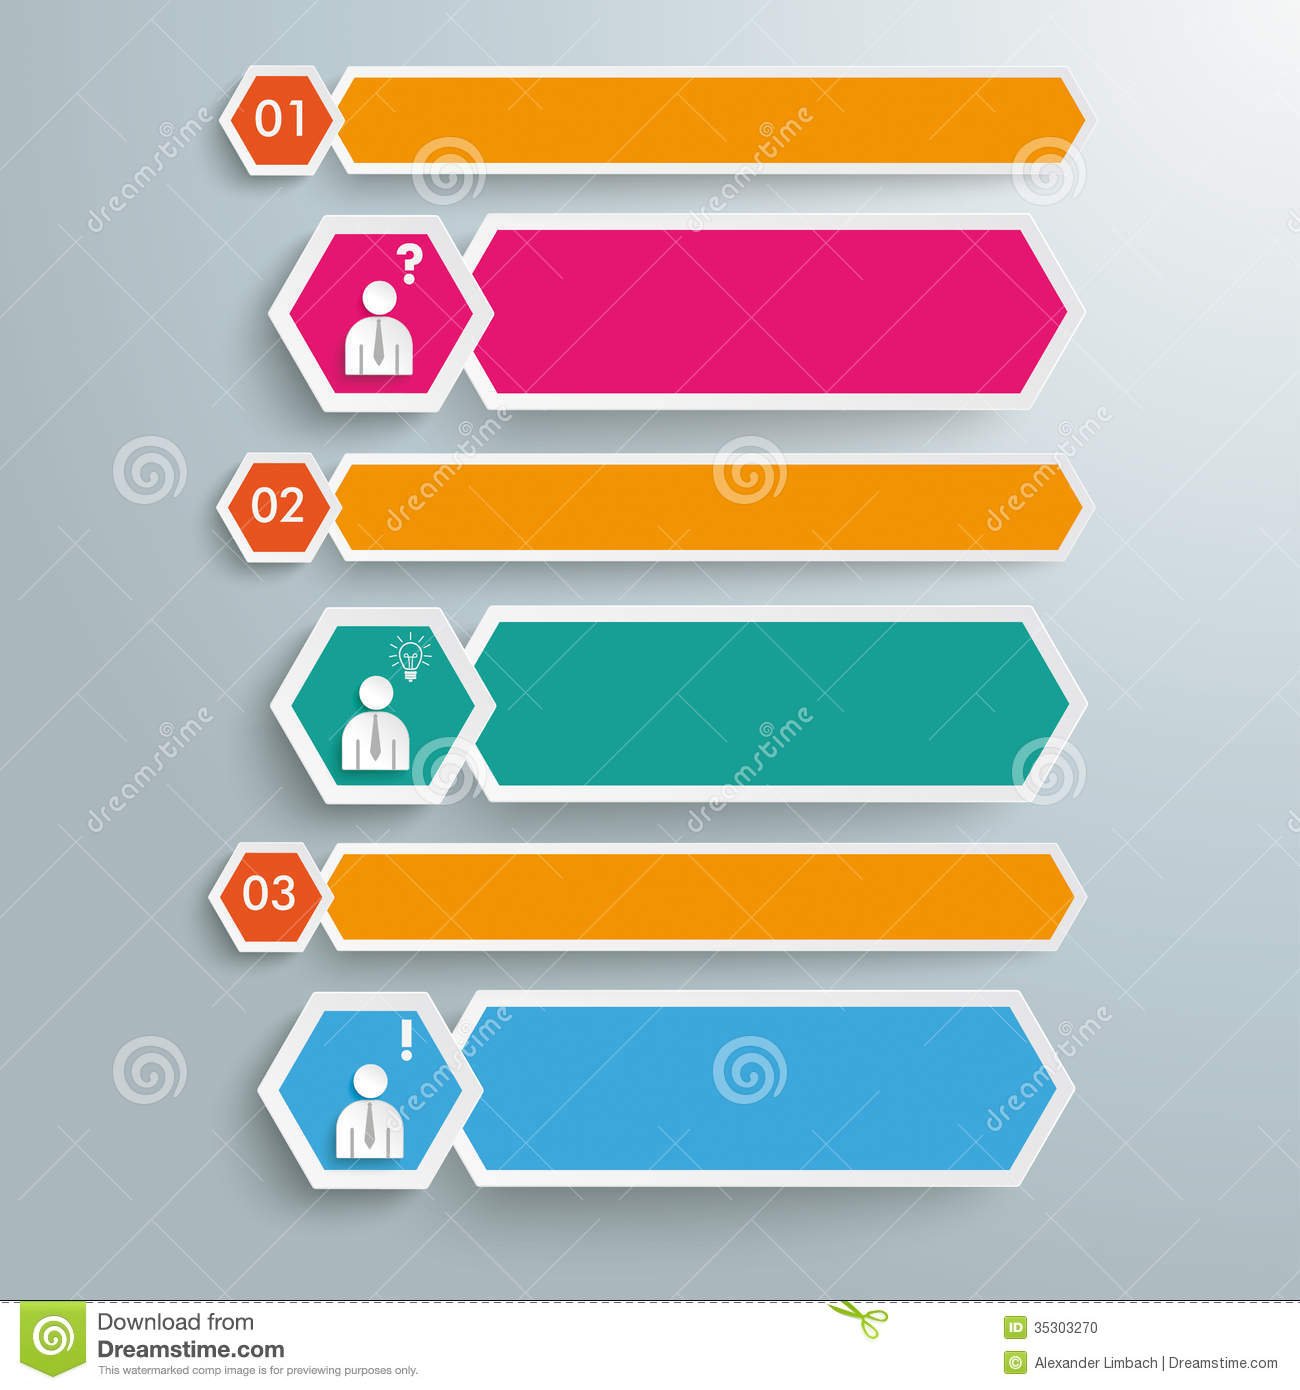 Infographic design on the grey background eps 10 vector file - Long Hexagons Banner 3 Steps Piad Stock Photo Image